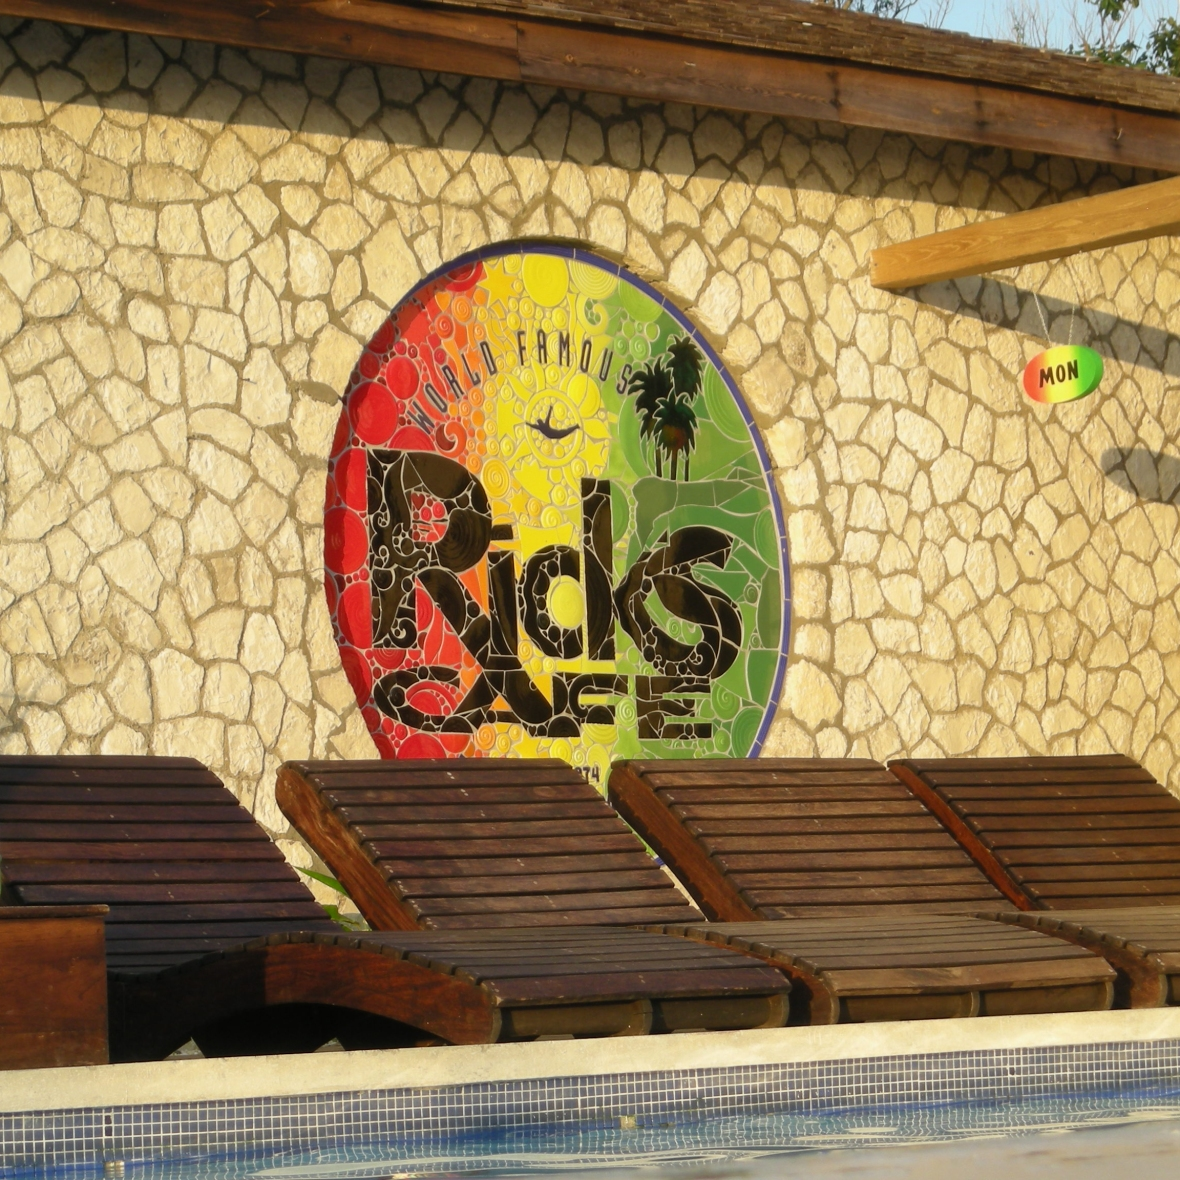 Ricks Cafe in Jamaica